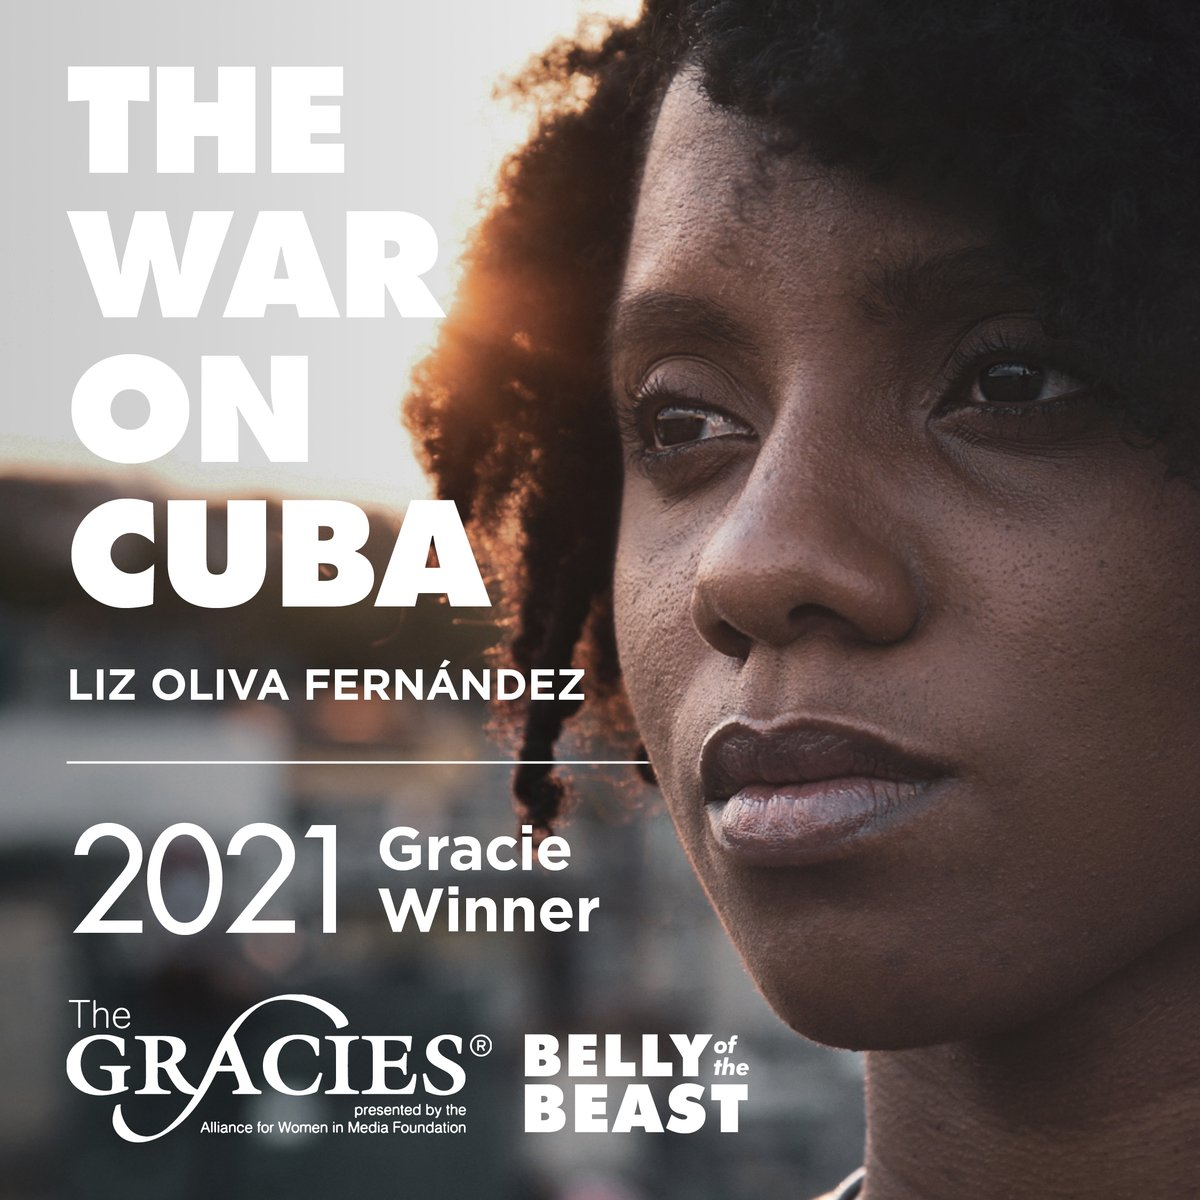 Tonight's the night! ✨ Liz Oliva Fernández's Gracie win and work will be acknowledged in one of the video montages available on @allwomeninmedia's website. Tune in for the virtual event tonight at 7PM ET/PT on Facebook! #TheGracies bit.ly/46thGracies